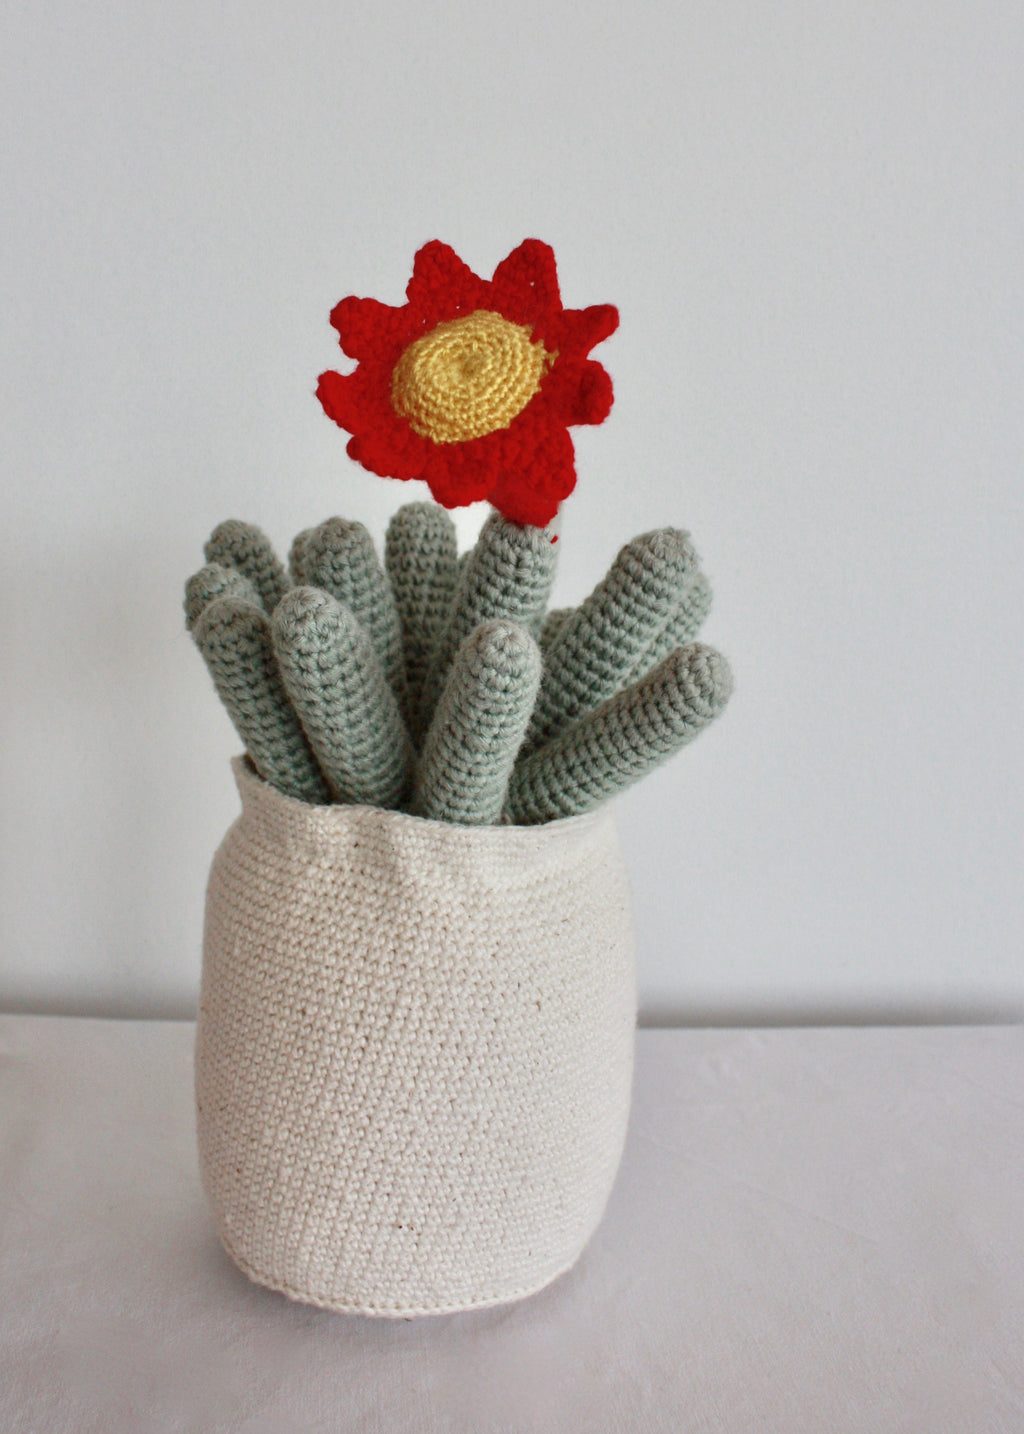 Flowering Crochet Cactus-Red Trumpet Flower